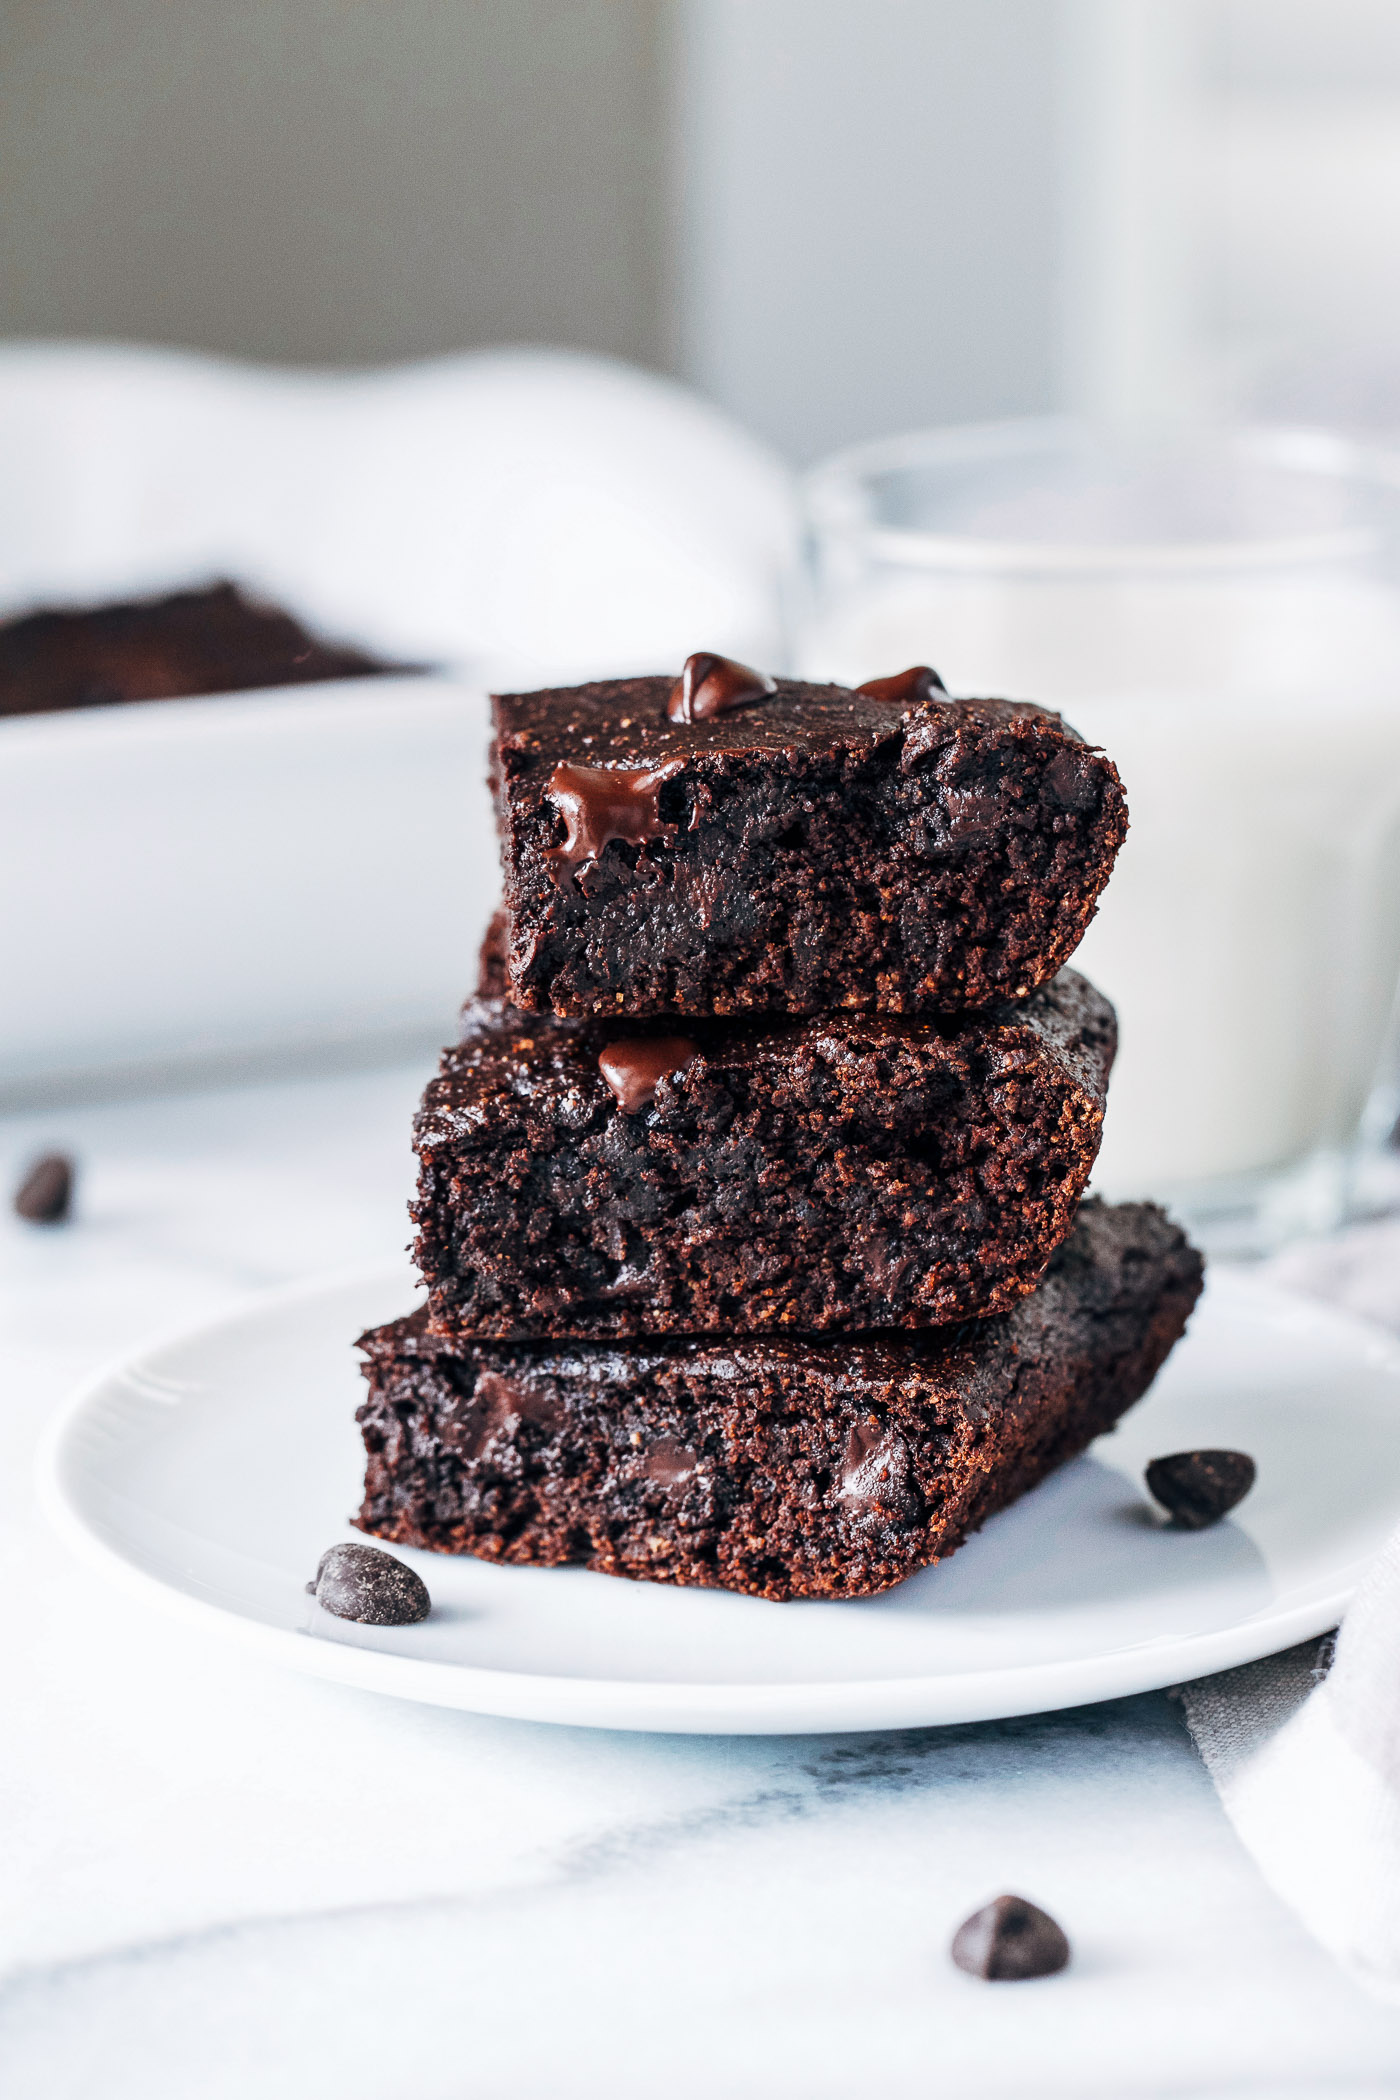 Vegan Avocado Brownies- avocado replaces oil for a fudgy brownie that's packed full of healthy